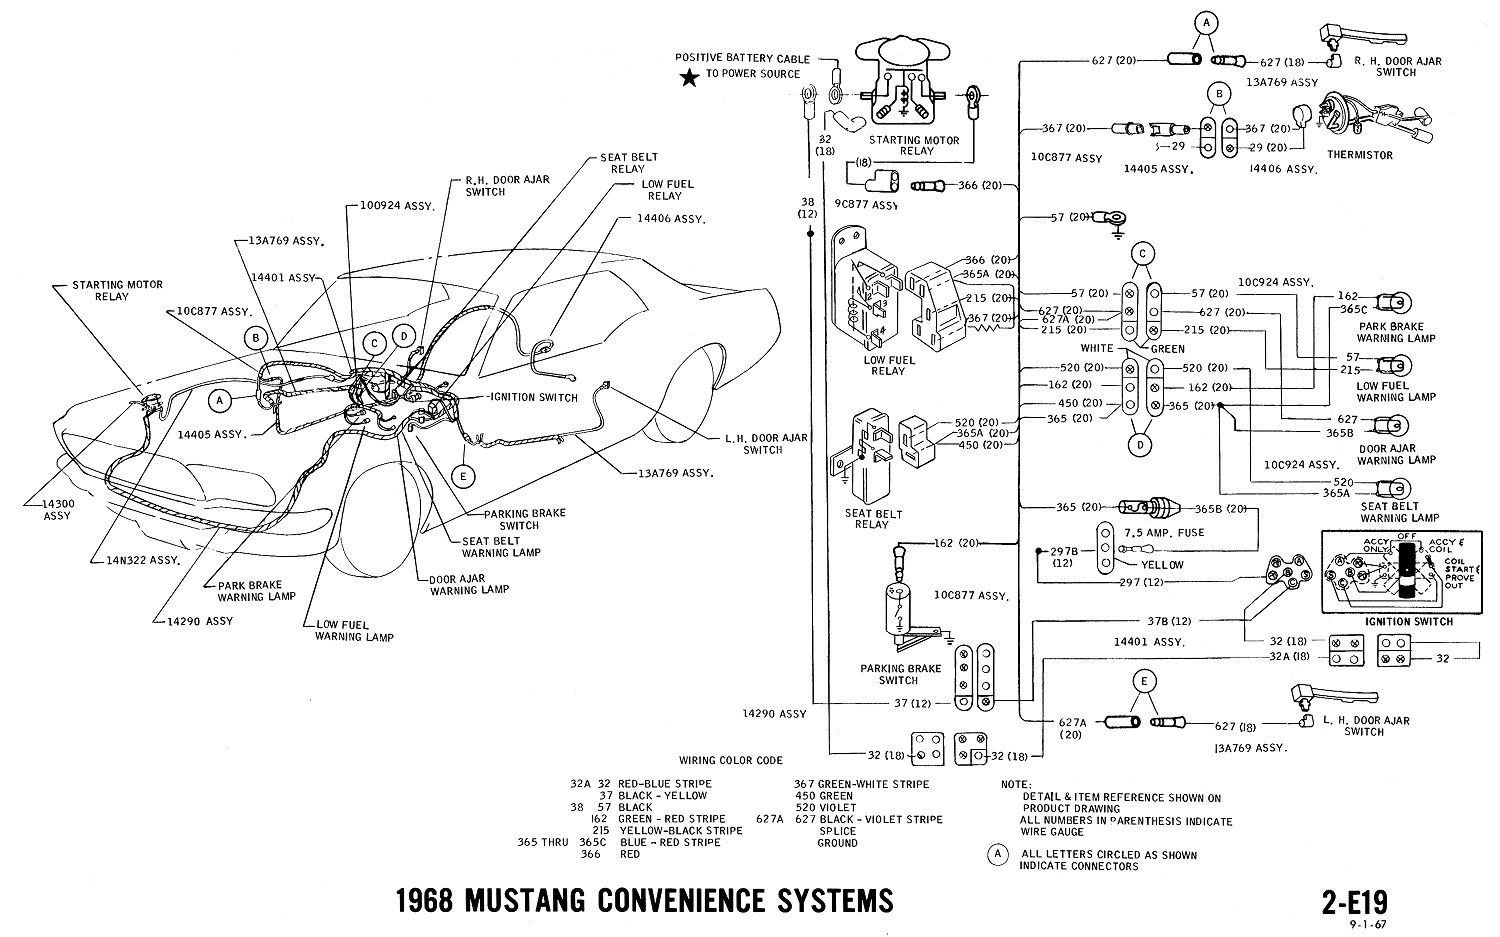 conditioner air conditioning wiring diagram with 1968 Mustang Wiring Diagram Vacuum Schematics on Electrical Schematic Diagrams likewise Apac Air Conditioning Wiring Diagrams besides 8k2lb 2004 Chevy Silverado 4x4 Ext Cab 1500 Air Conditioning furthermore Ruud Air Conditioner Wiring Diagram besides 560639 American Standard Trane Heat Pump Air Handler Thermostat Not Wired Correct.